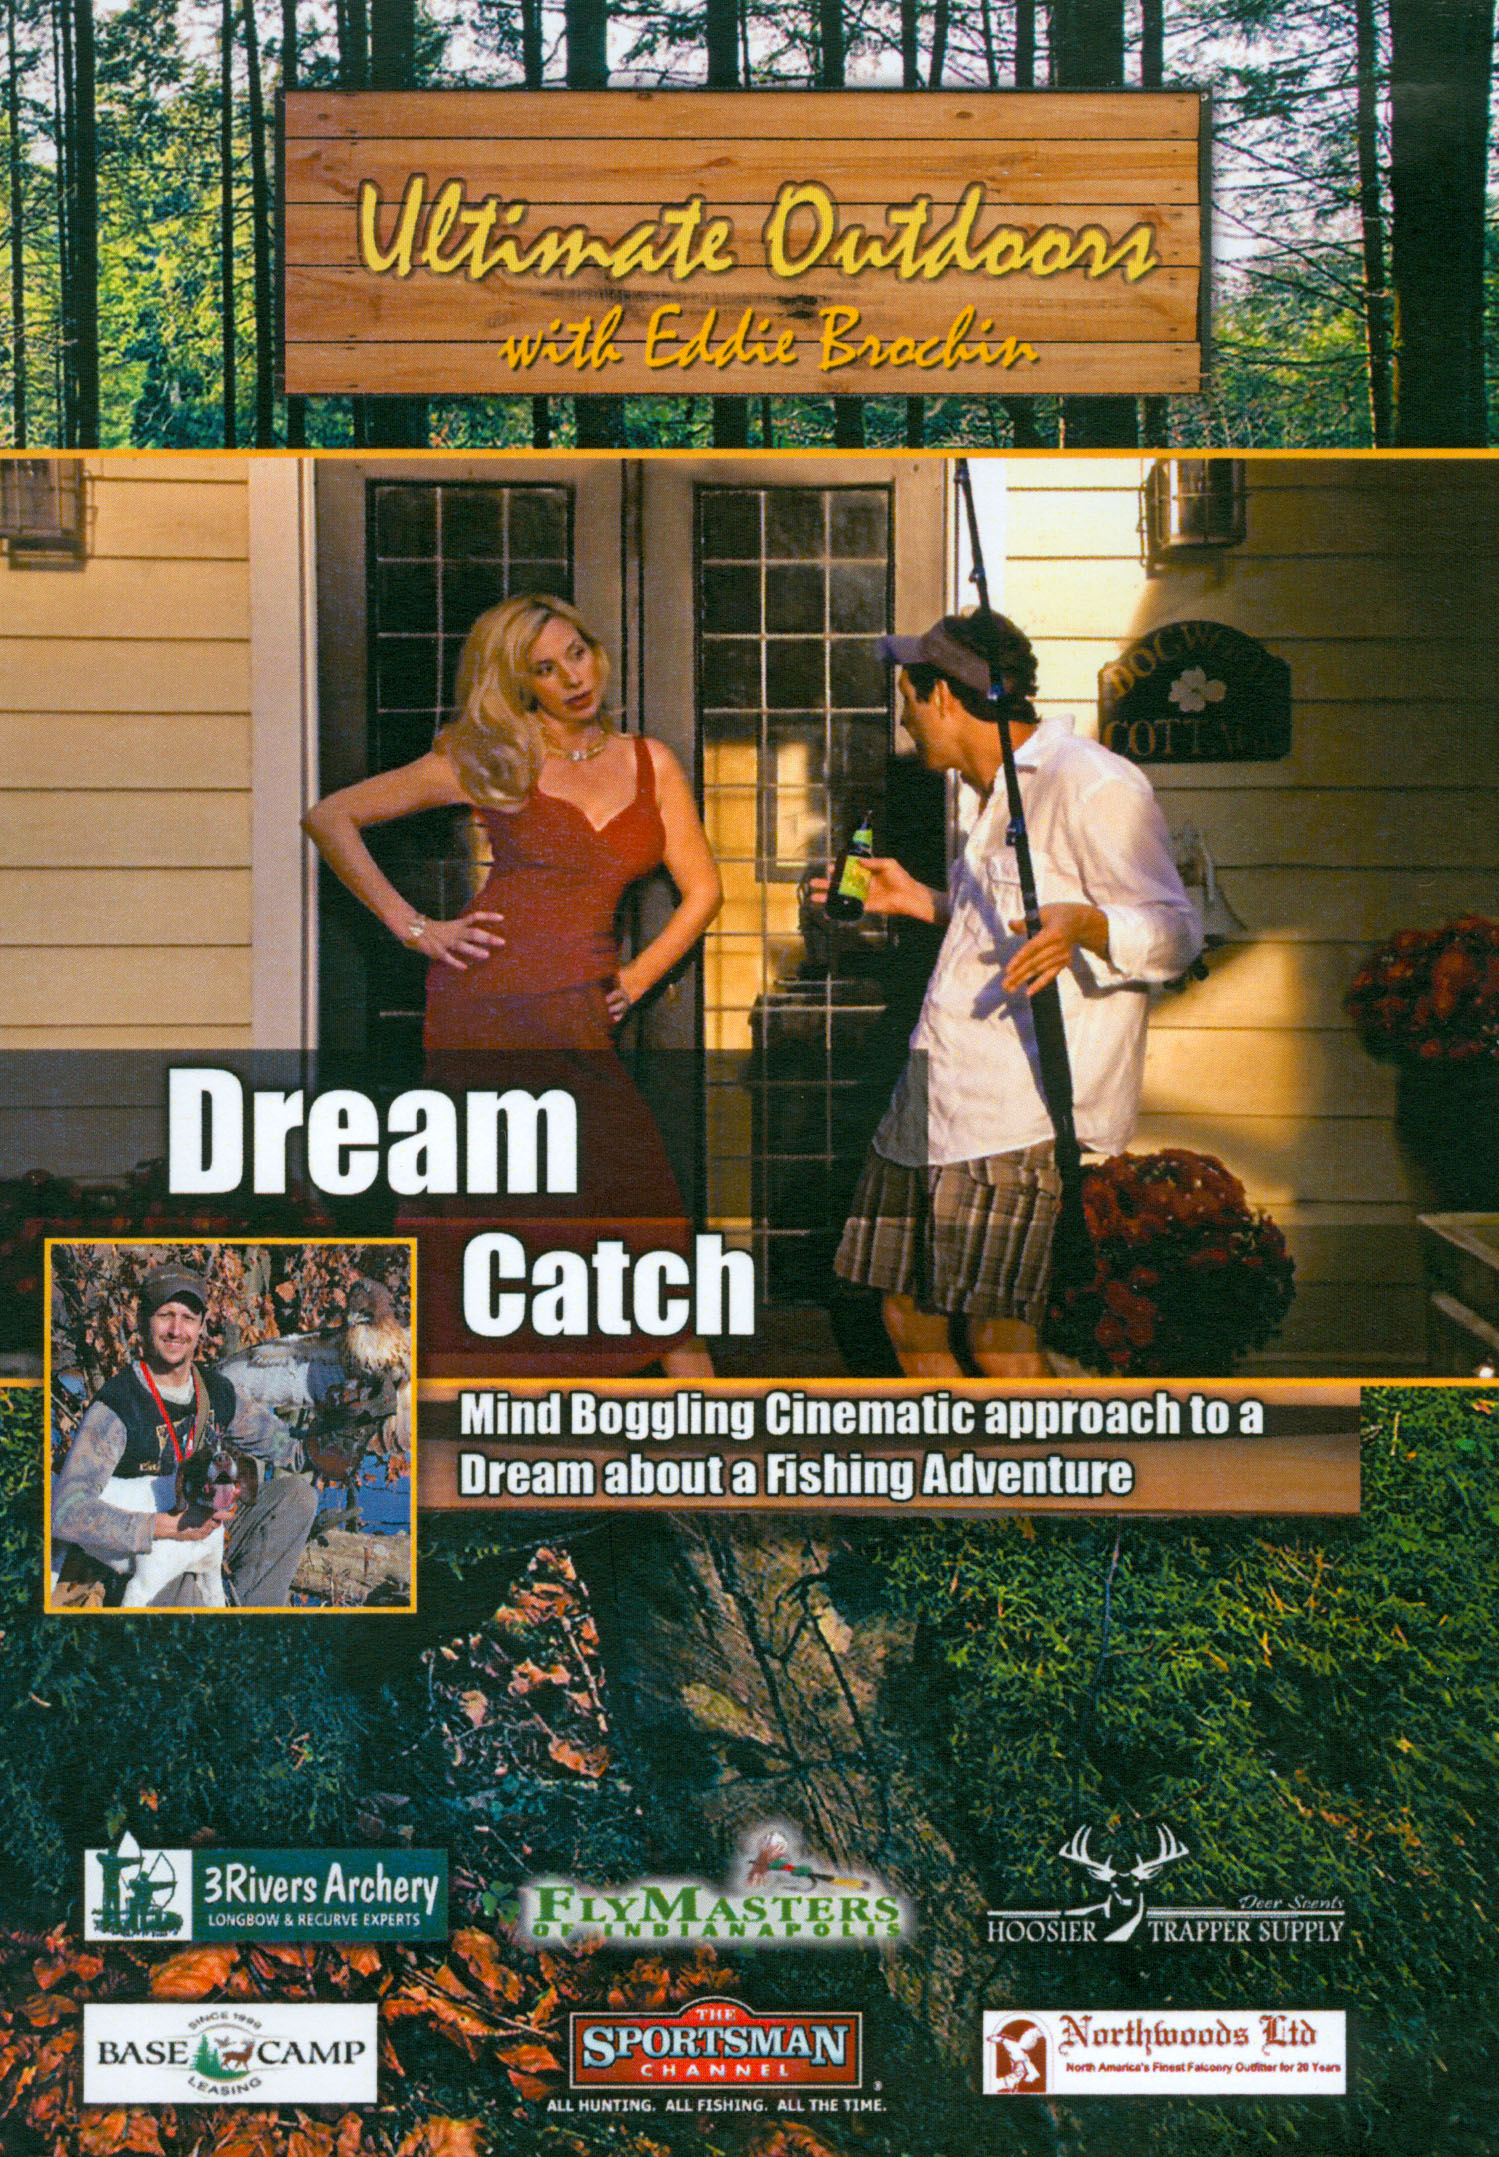 Ultimate Outdoors With Eddie Brochin: Dream Catch